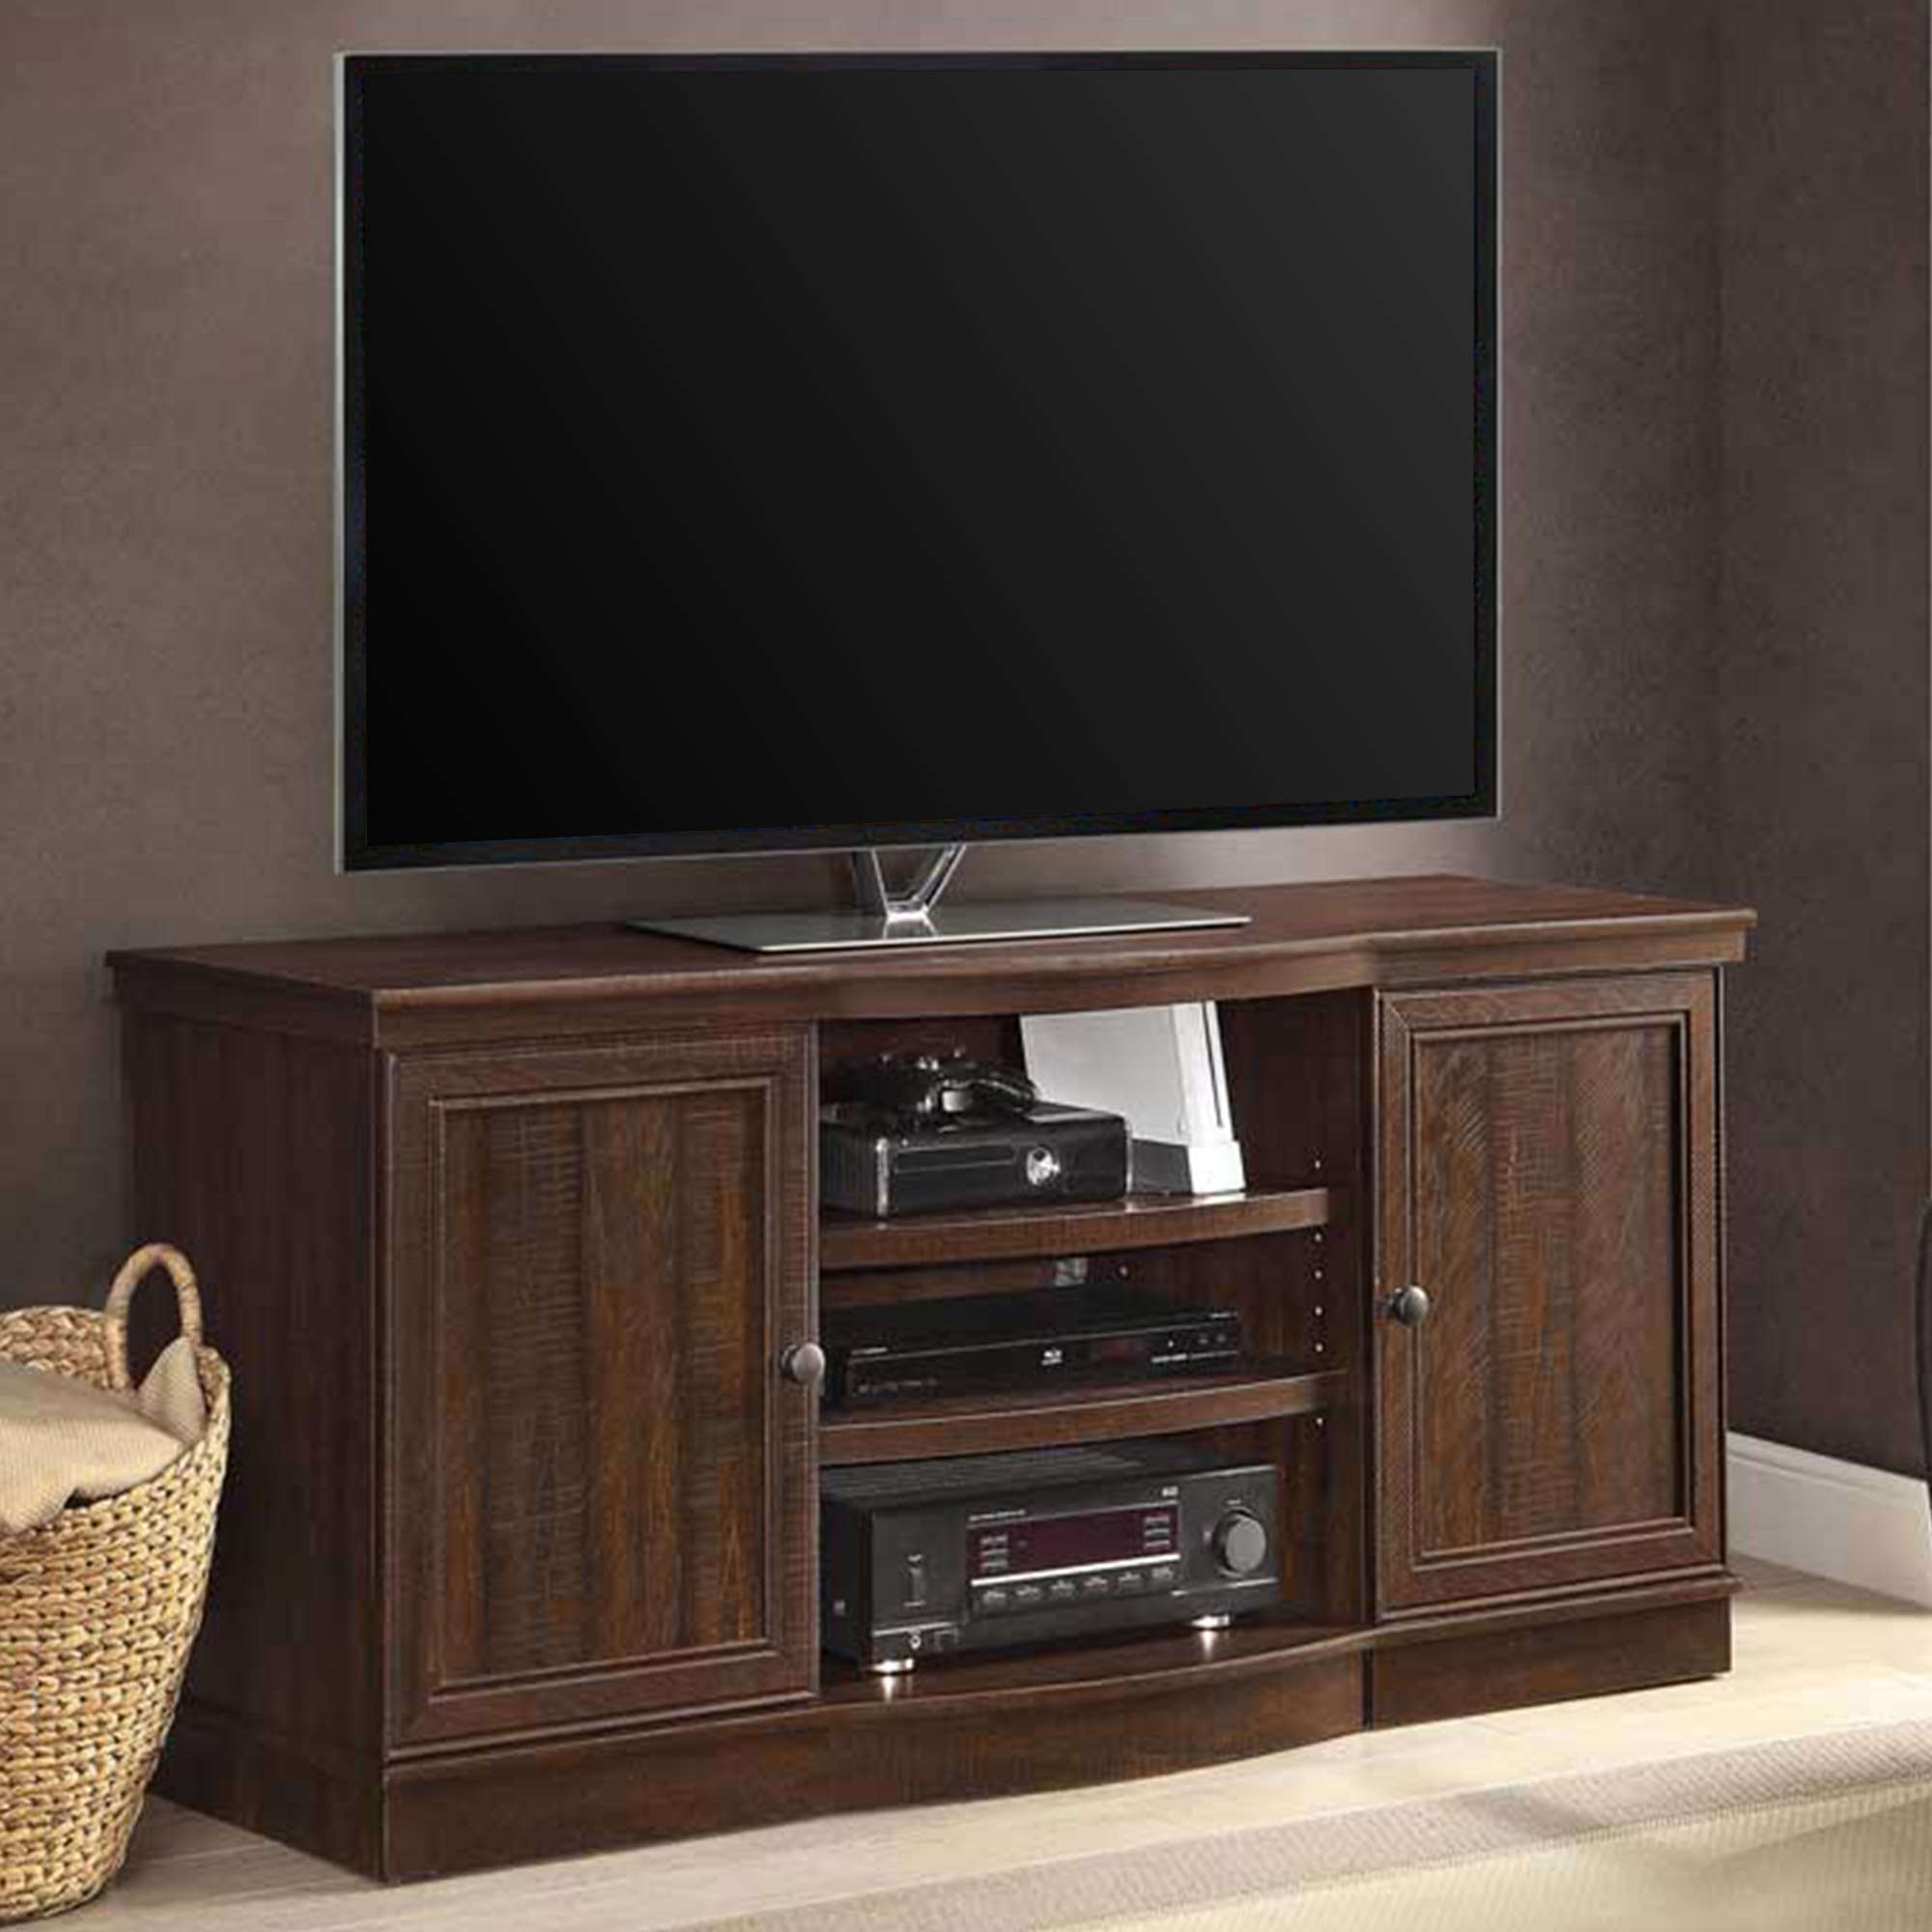 "Whalen TV Console for TVs up to 70"", Rustic Brown Finish"